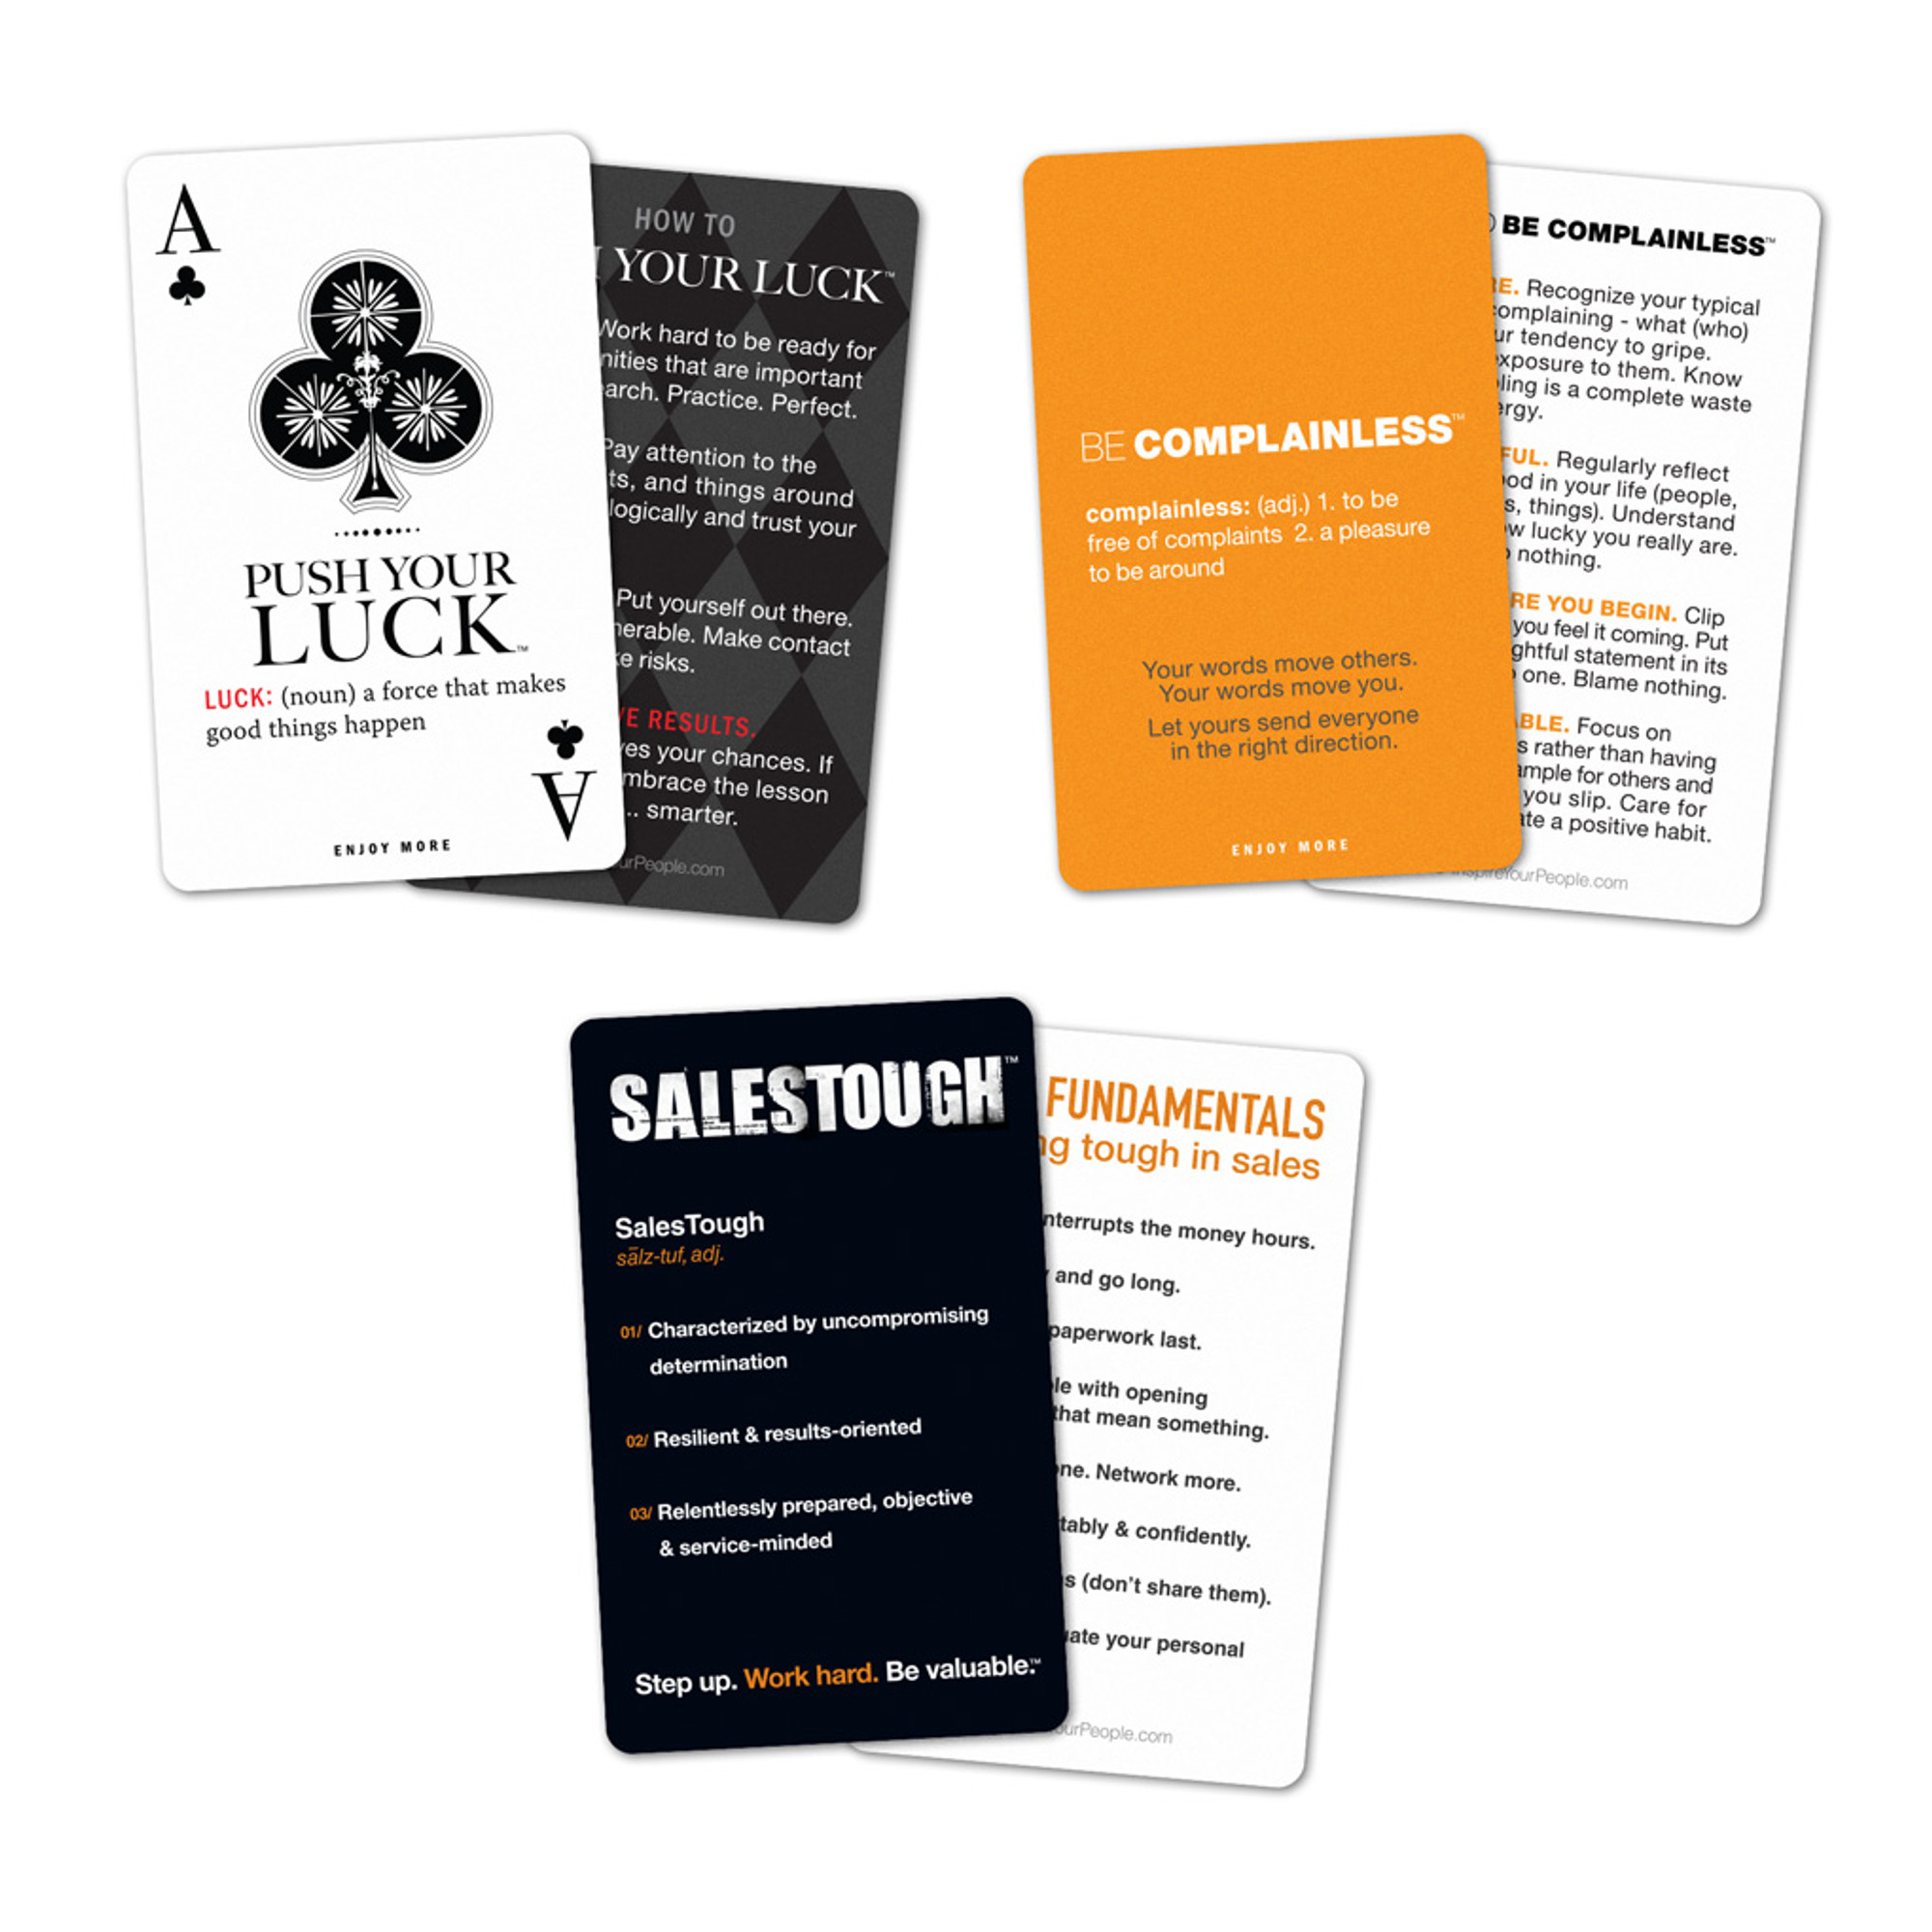 personal pocket card collection with salestough